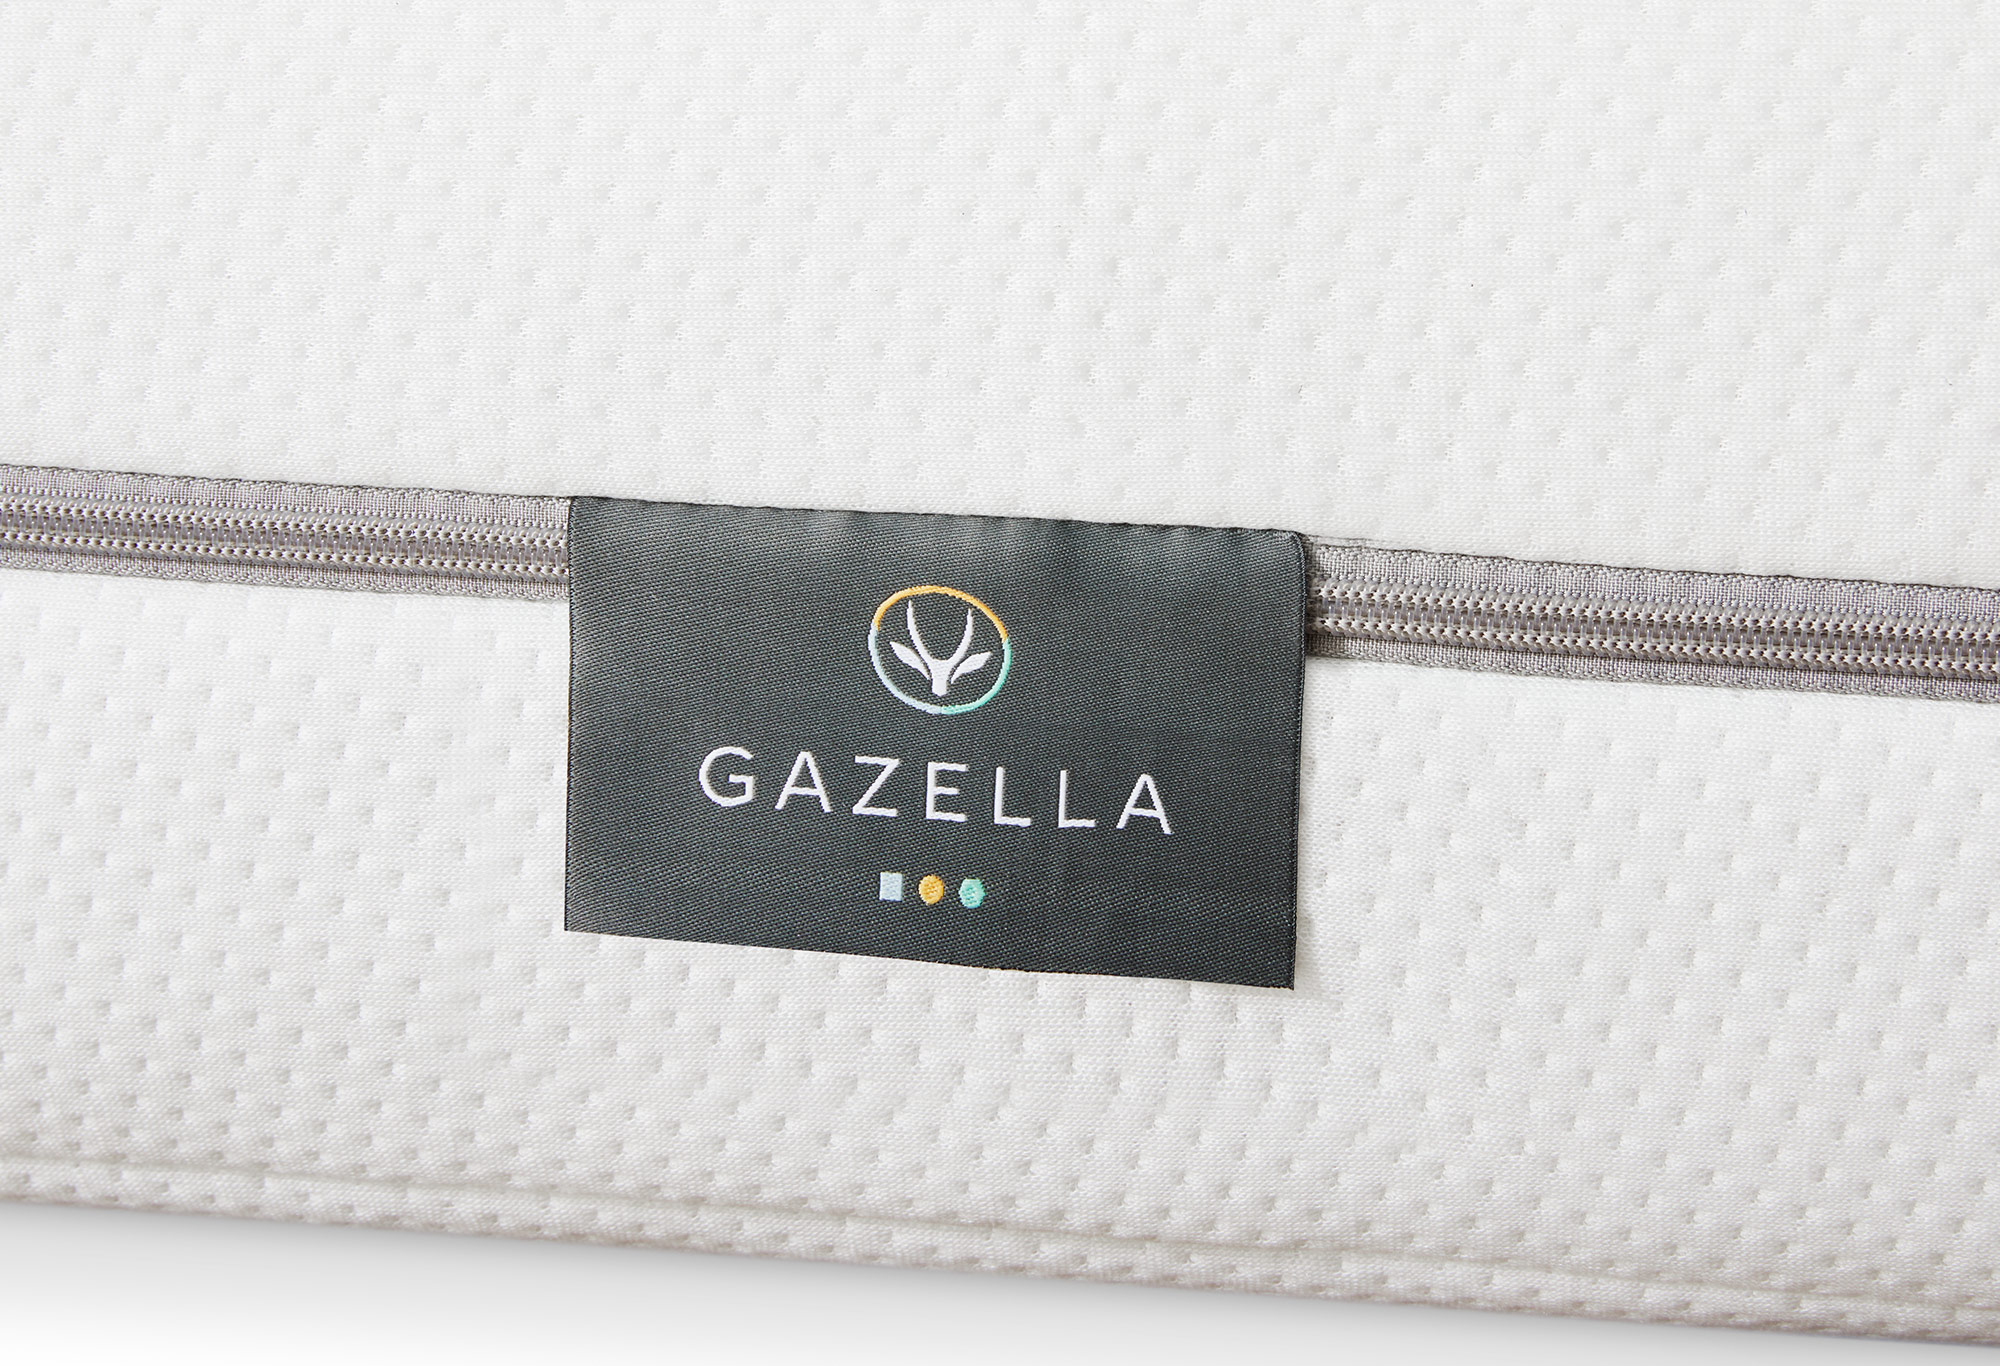 Gazella Support I Pocketvering Matras Detail | Swiss Sense